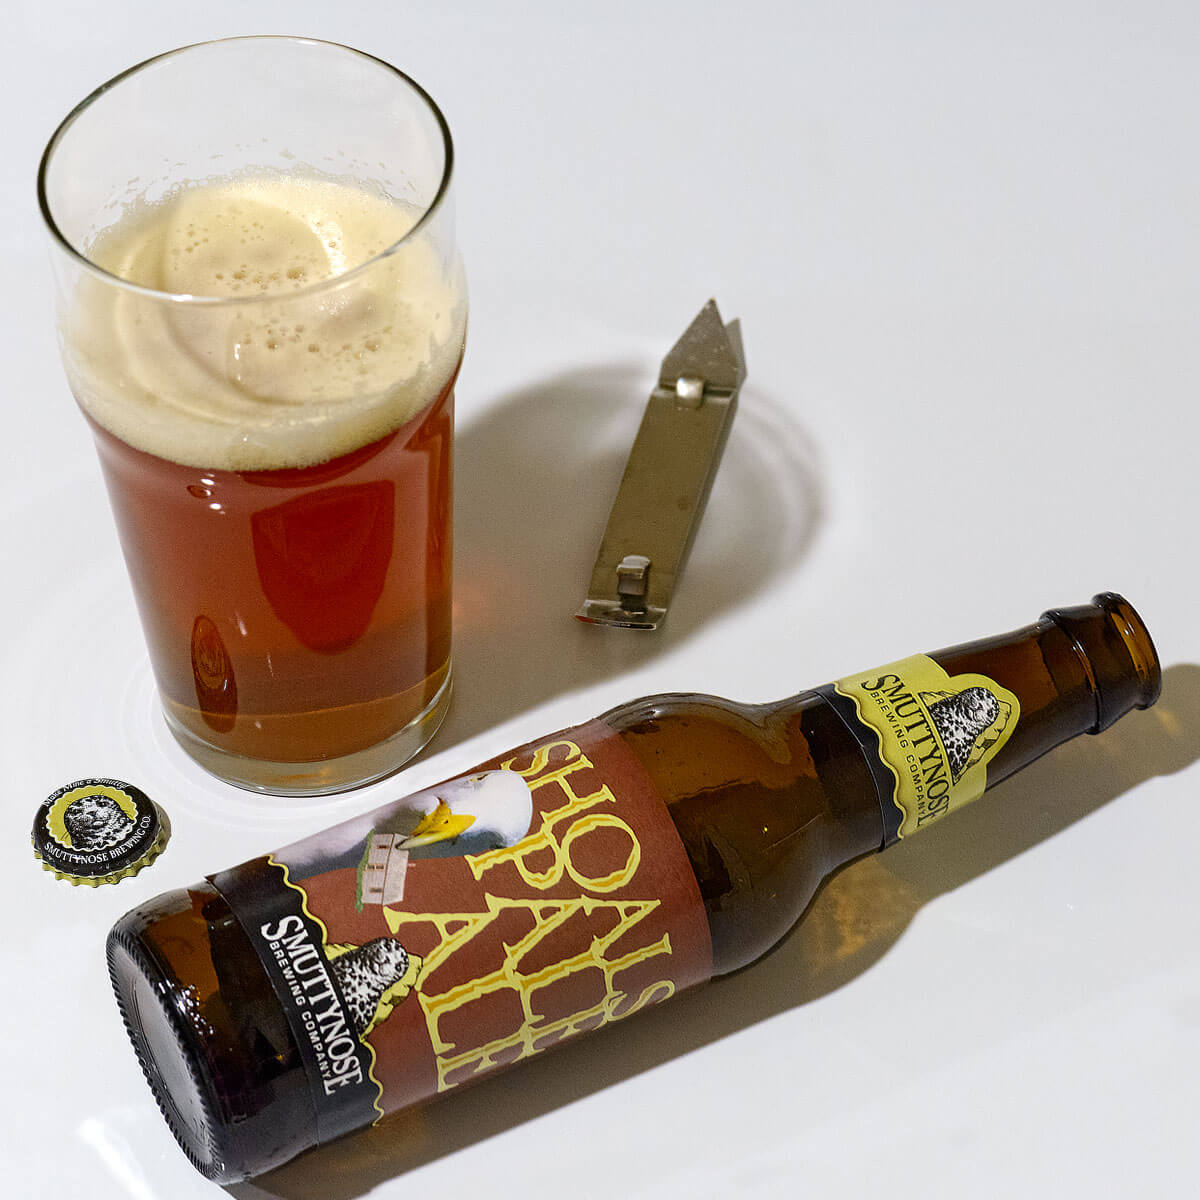 Shoals Pale Ale, an English-style Pale Ale by Smuttynose Brewing Company